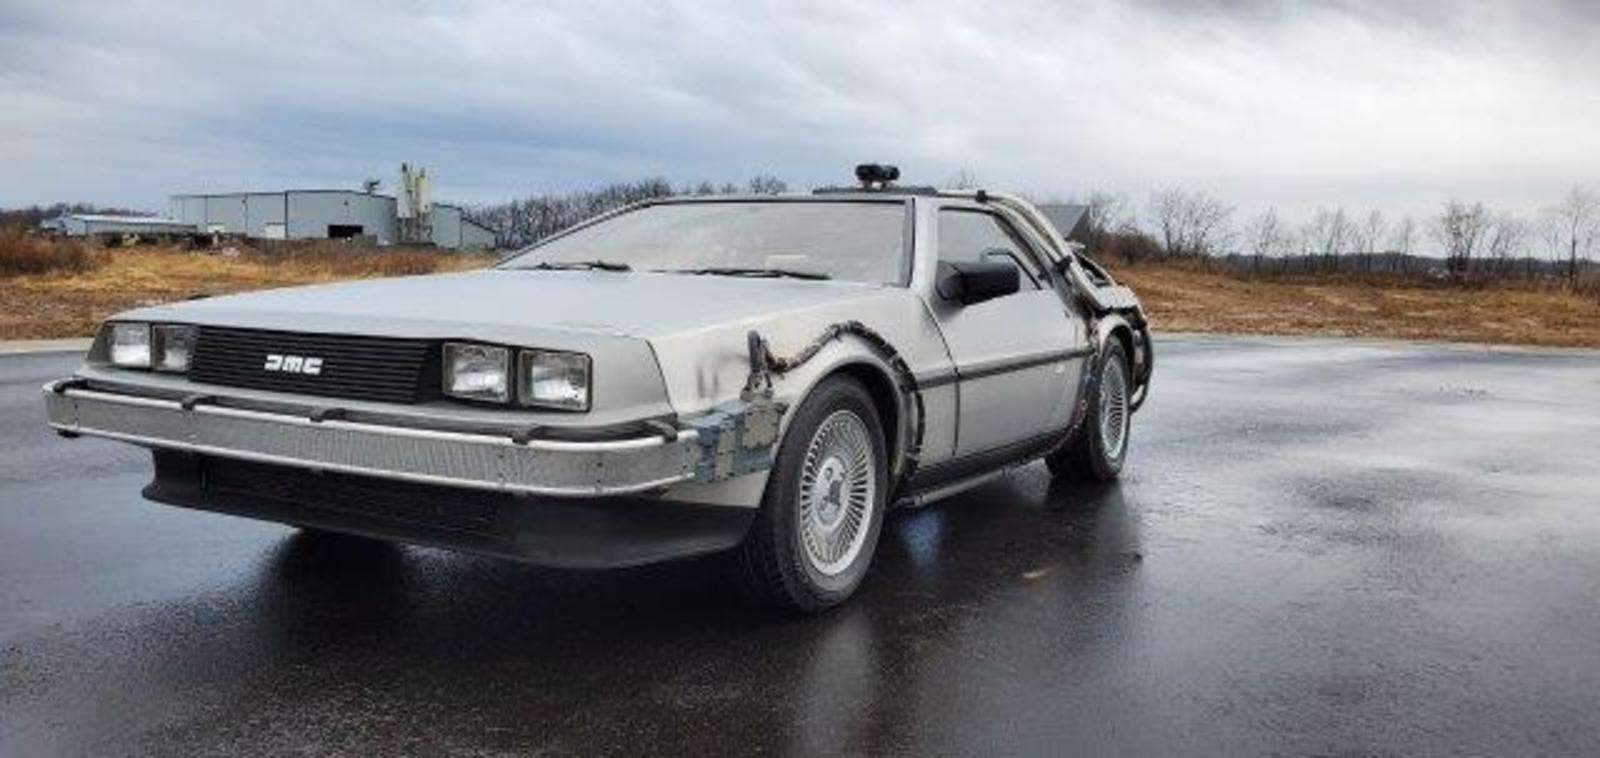 DeLorean dreams: Movie replica cars seized in federal case up for auction